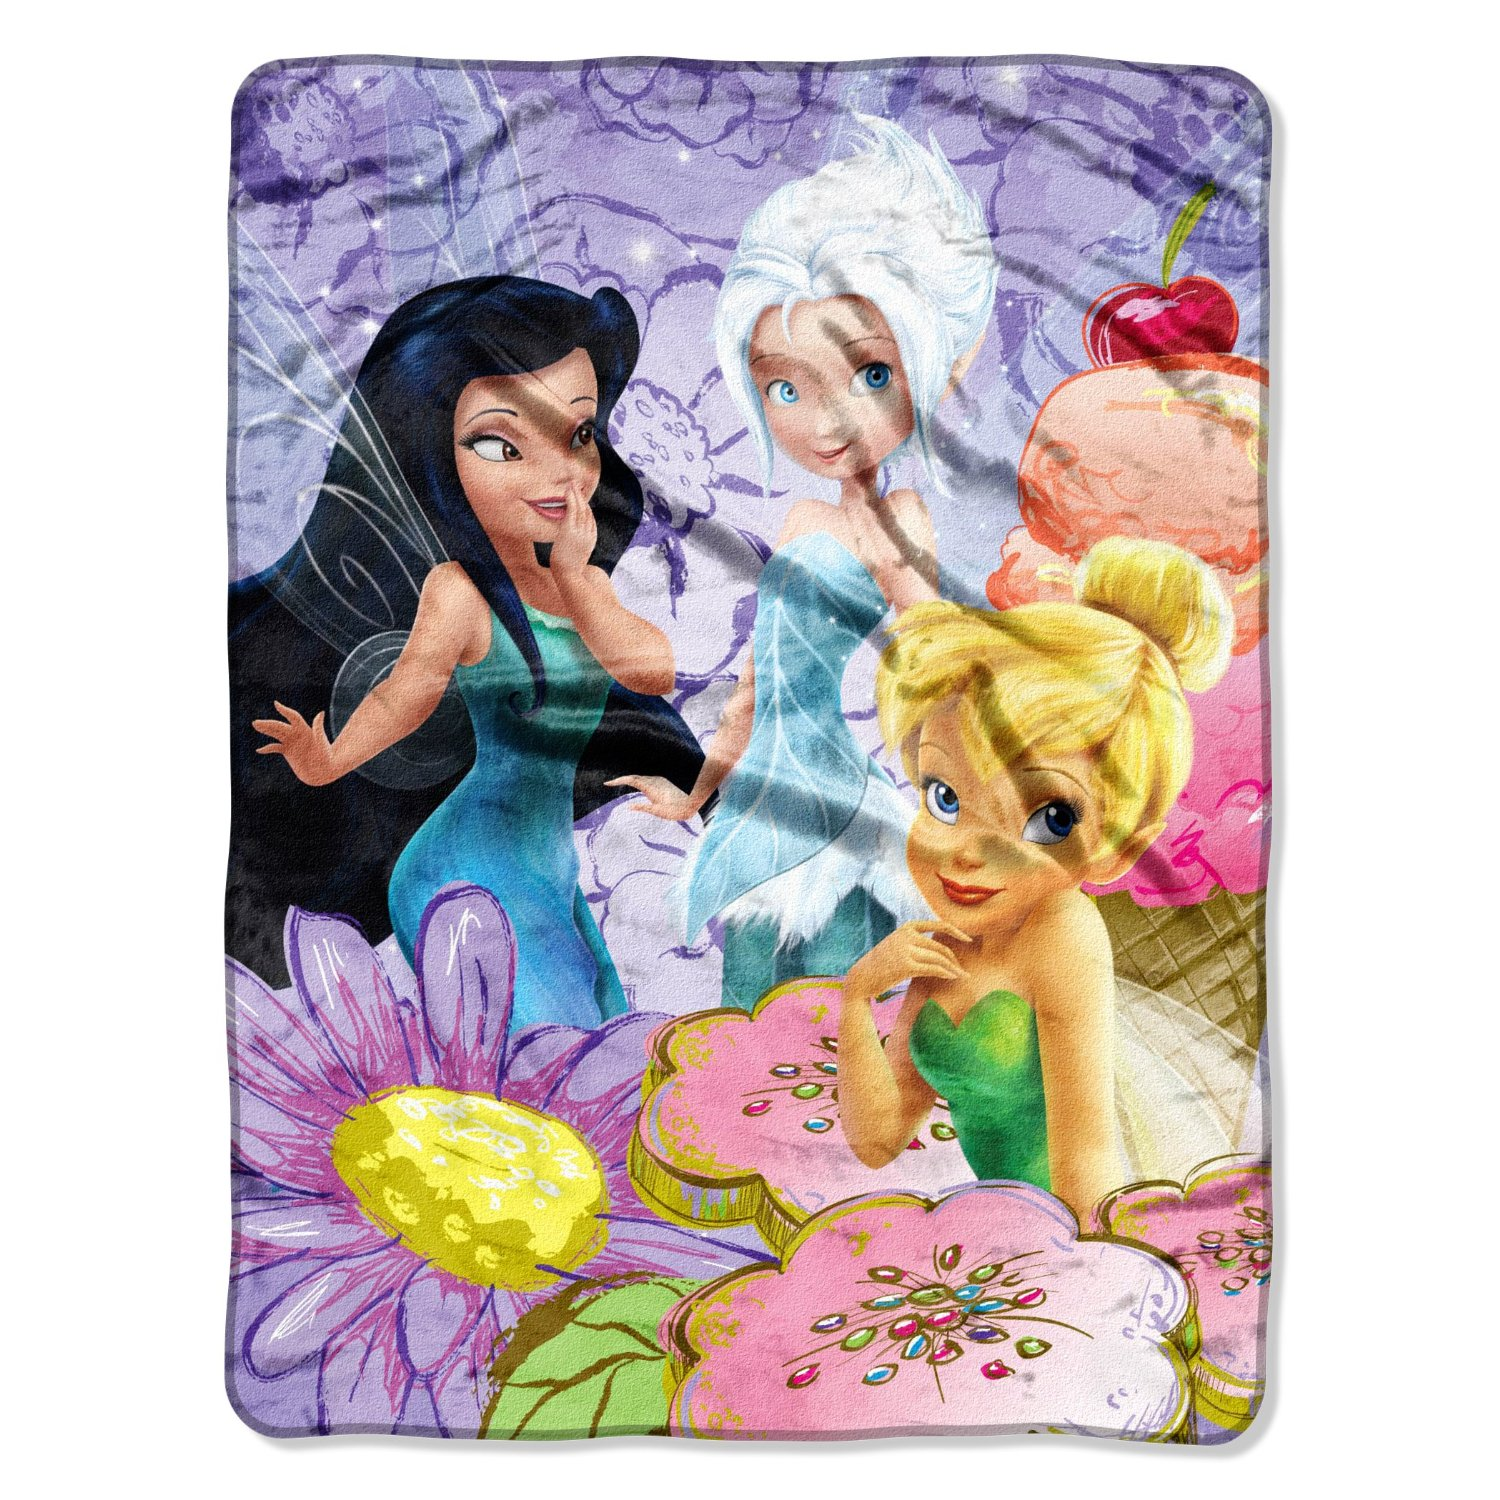 "Micro Raschel Throws - Disney - Tinkerbell - Fairies Treats New 46x60"" Blanket"